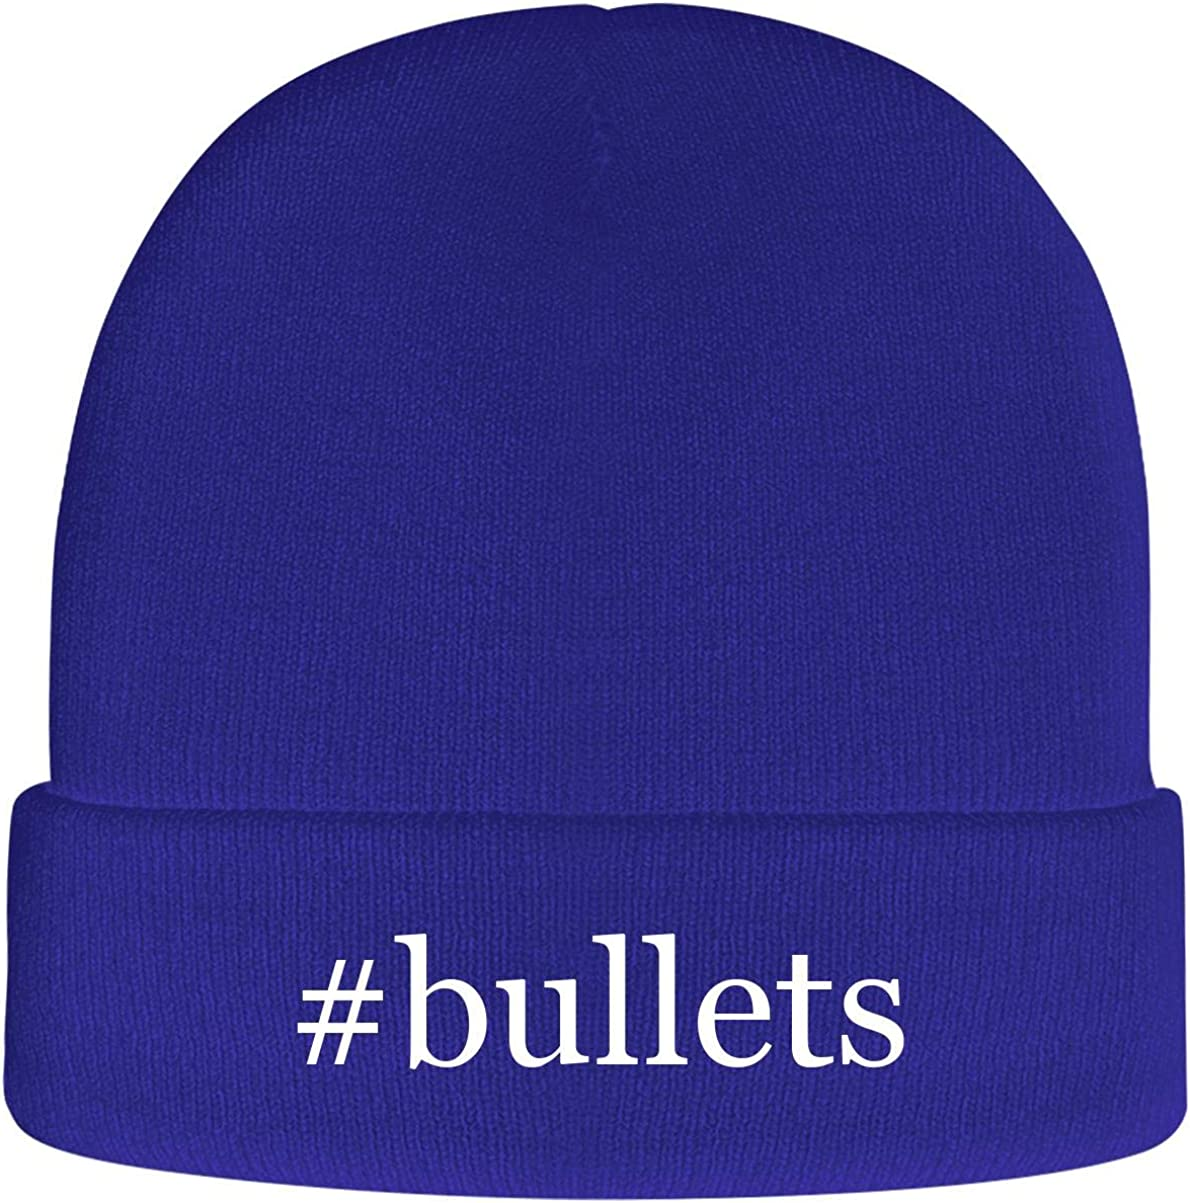 One Legging it Around #Bullets - Hashtag Soft Adult Beanie Cap